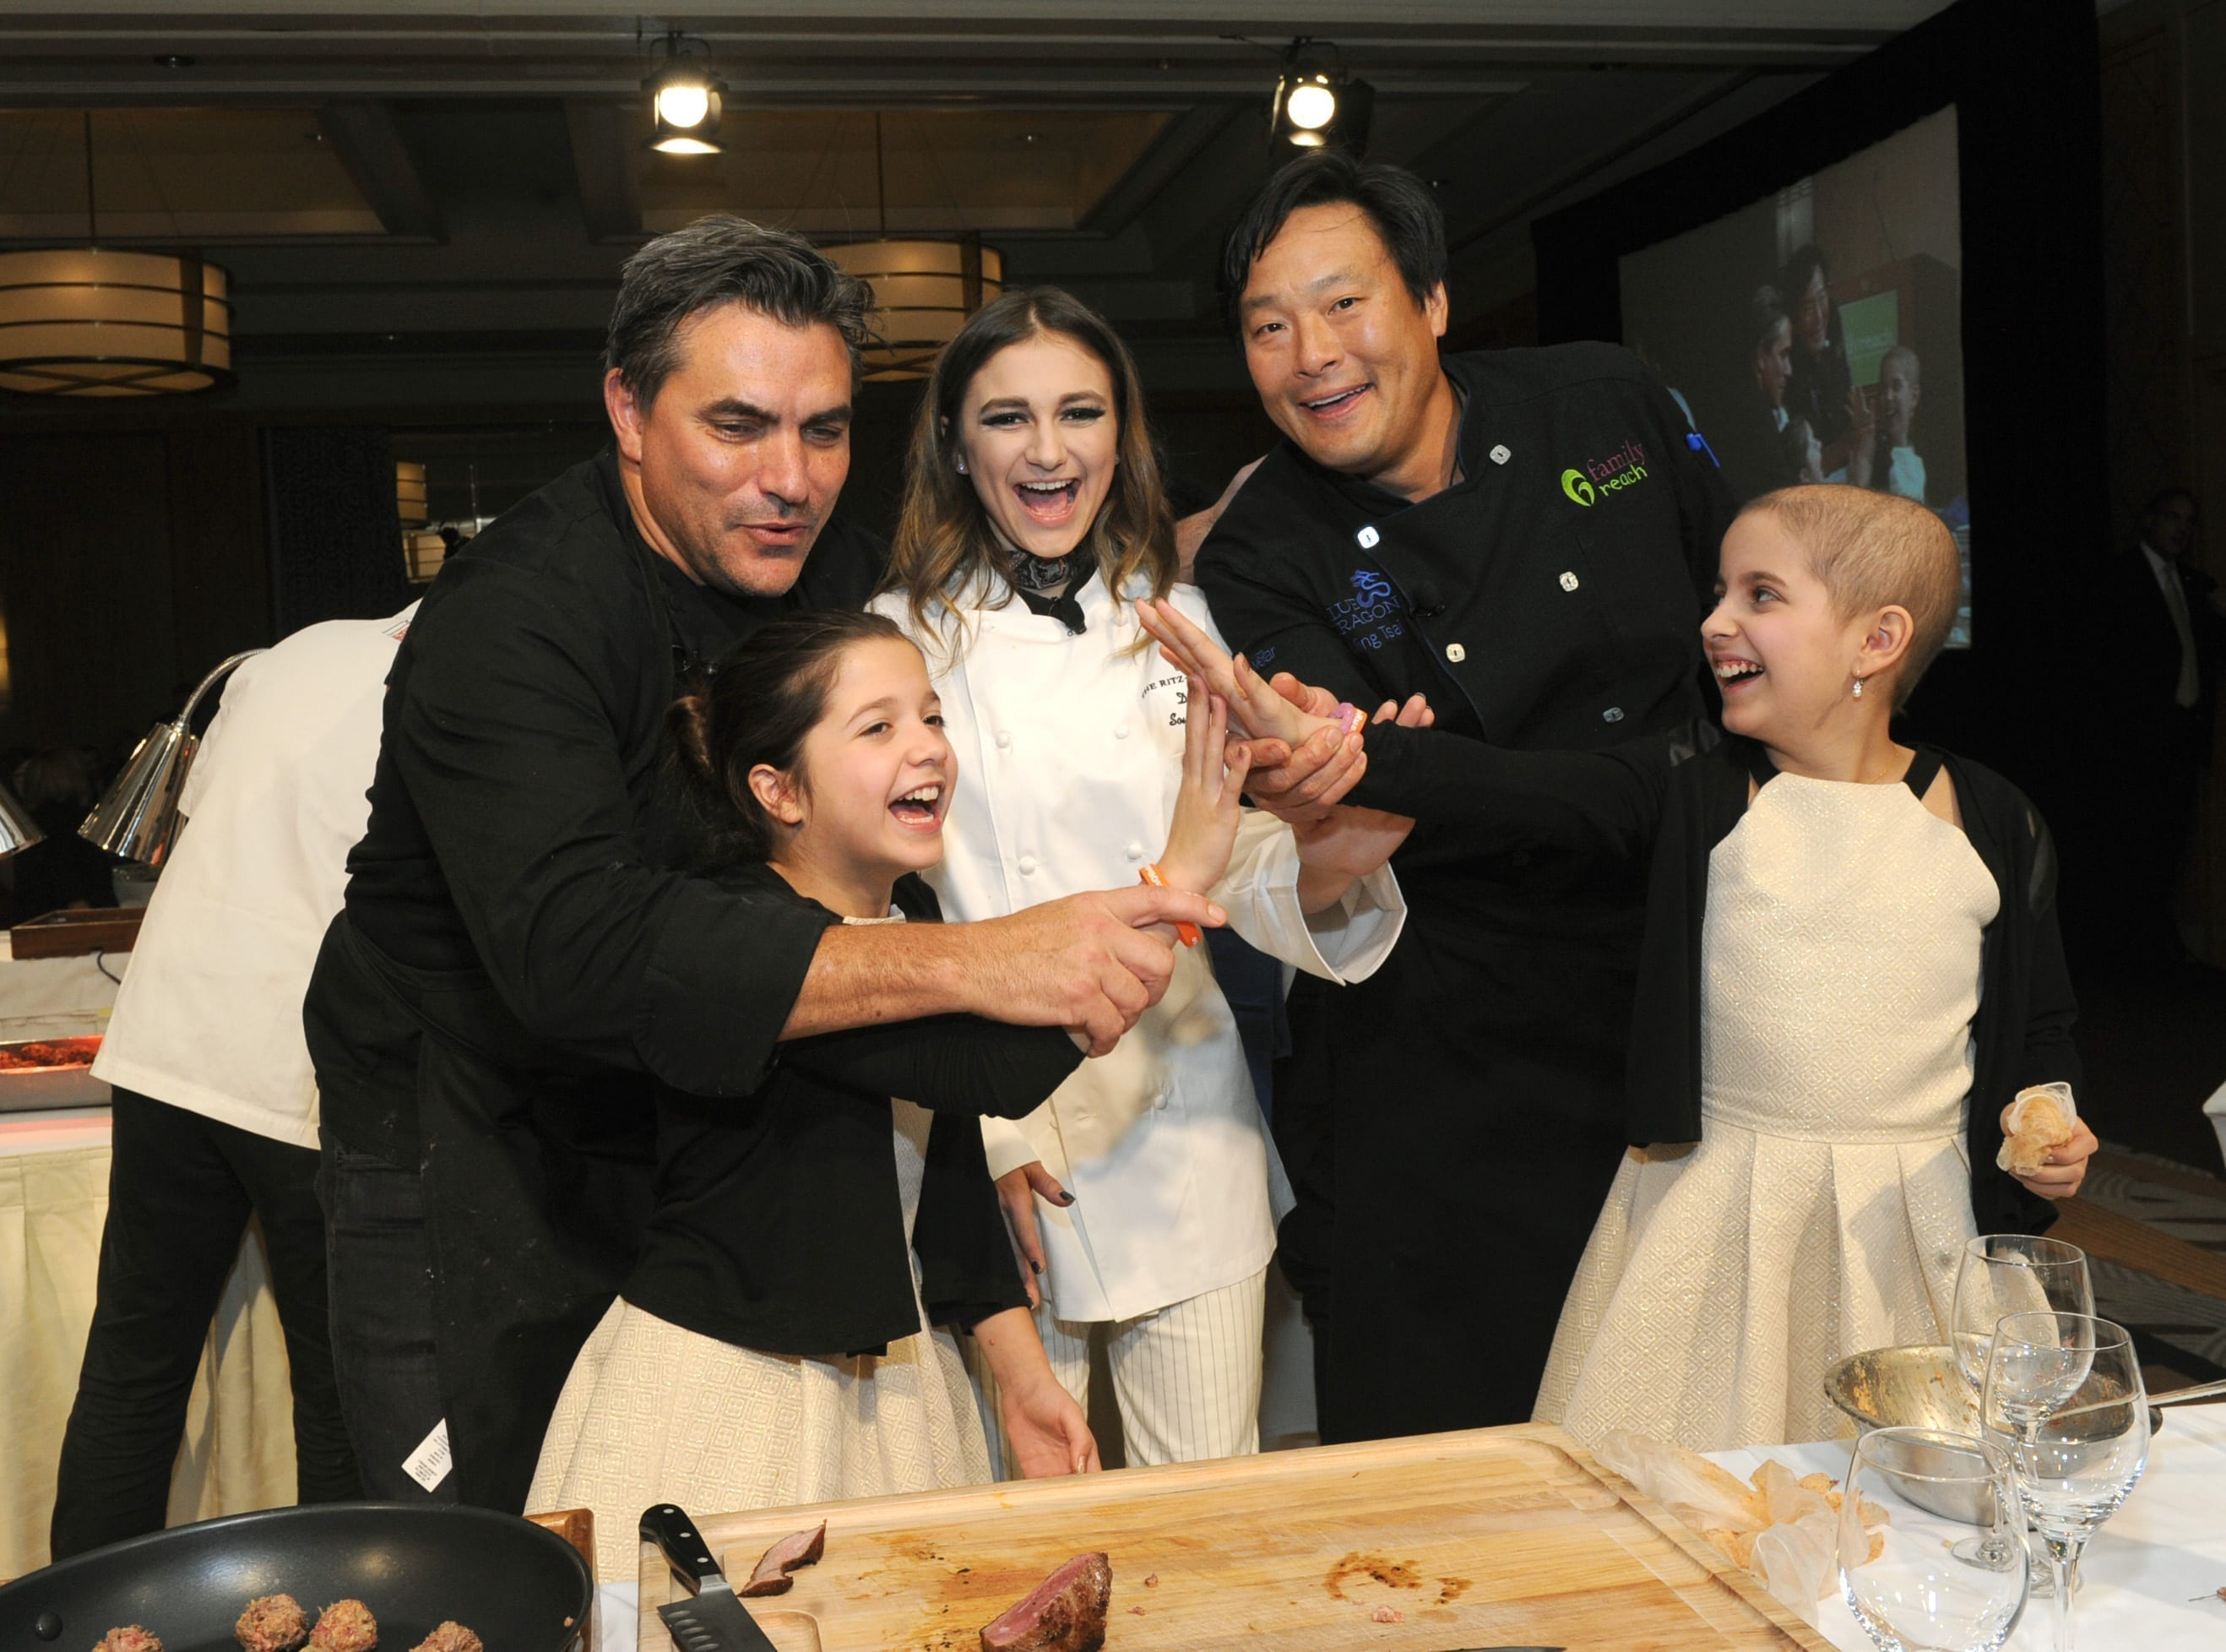 Todd English, Daya (singer/songwriter) and Ming Tsai prepare the fourth course of the evening with twins Olivia and Sabrina. Olivia is currently battling a rare form of leukemia and Sabrina is her bone marrow donor.